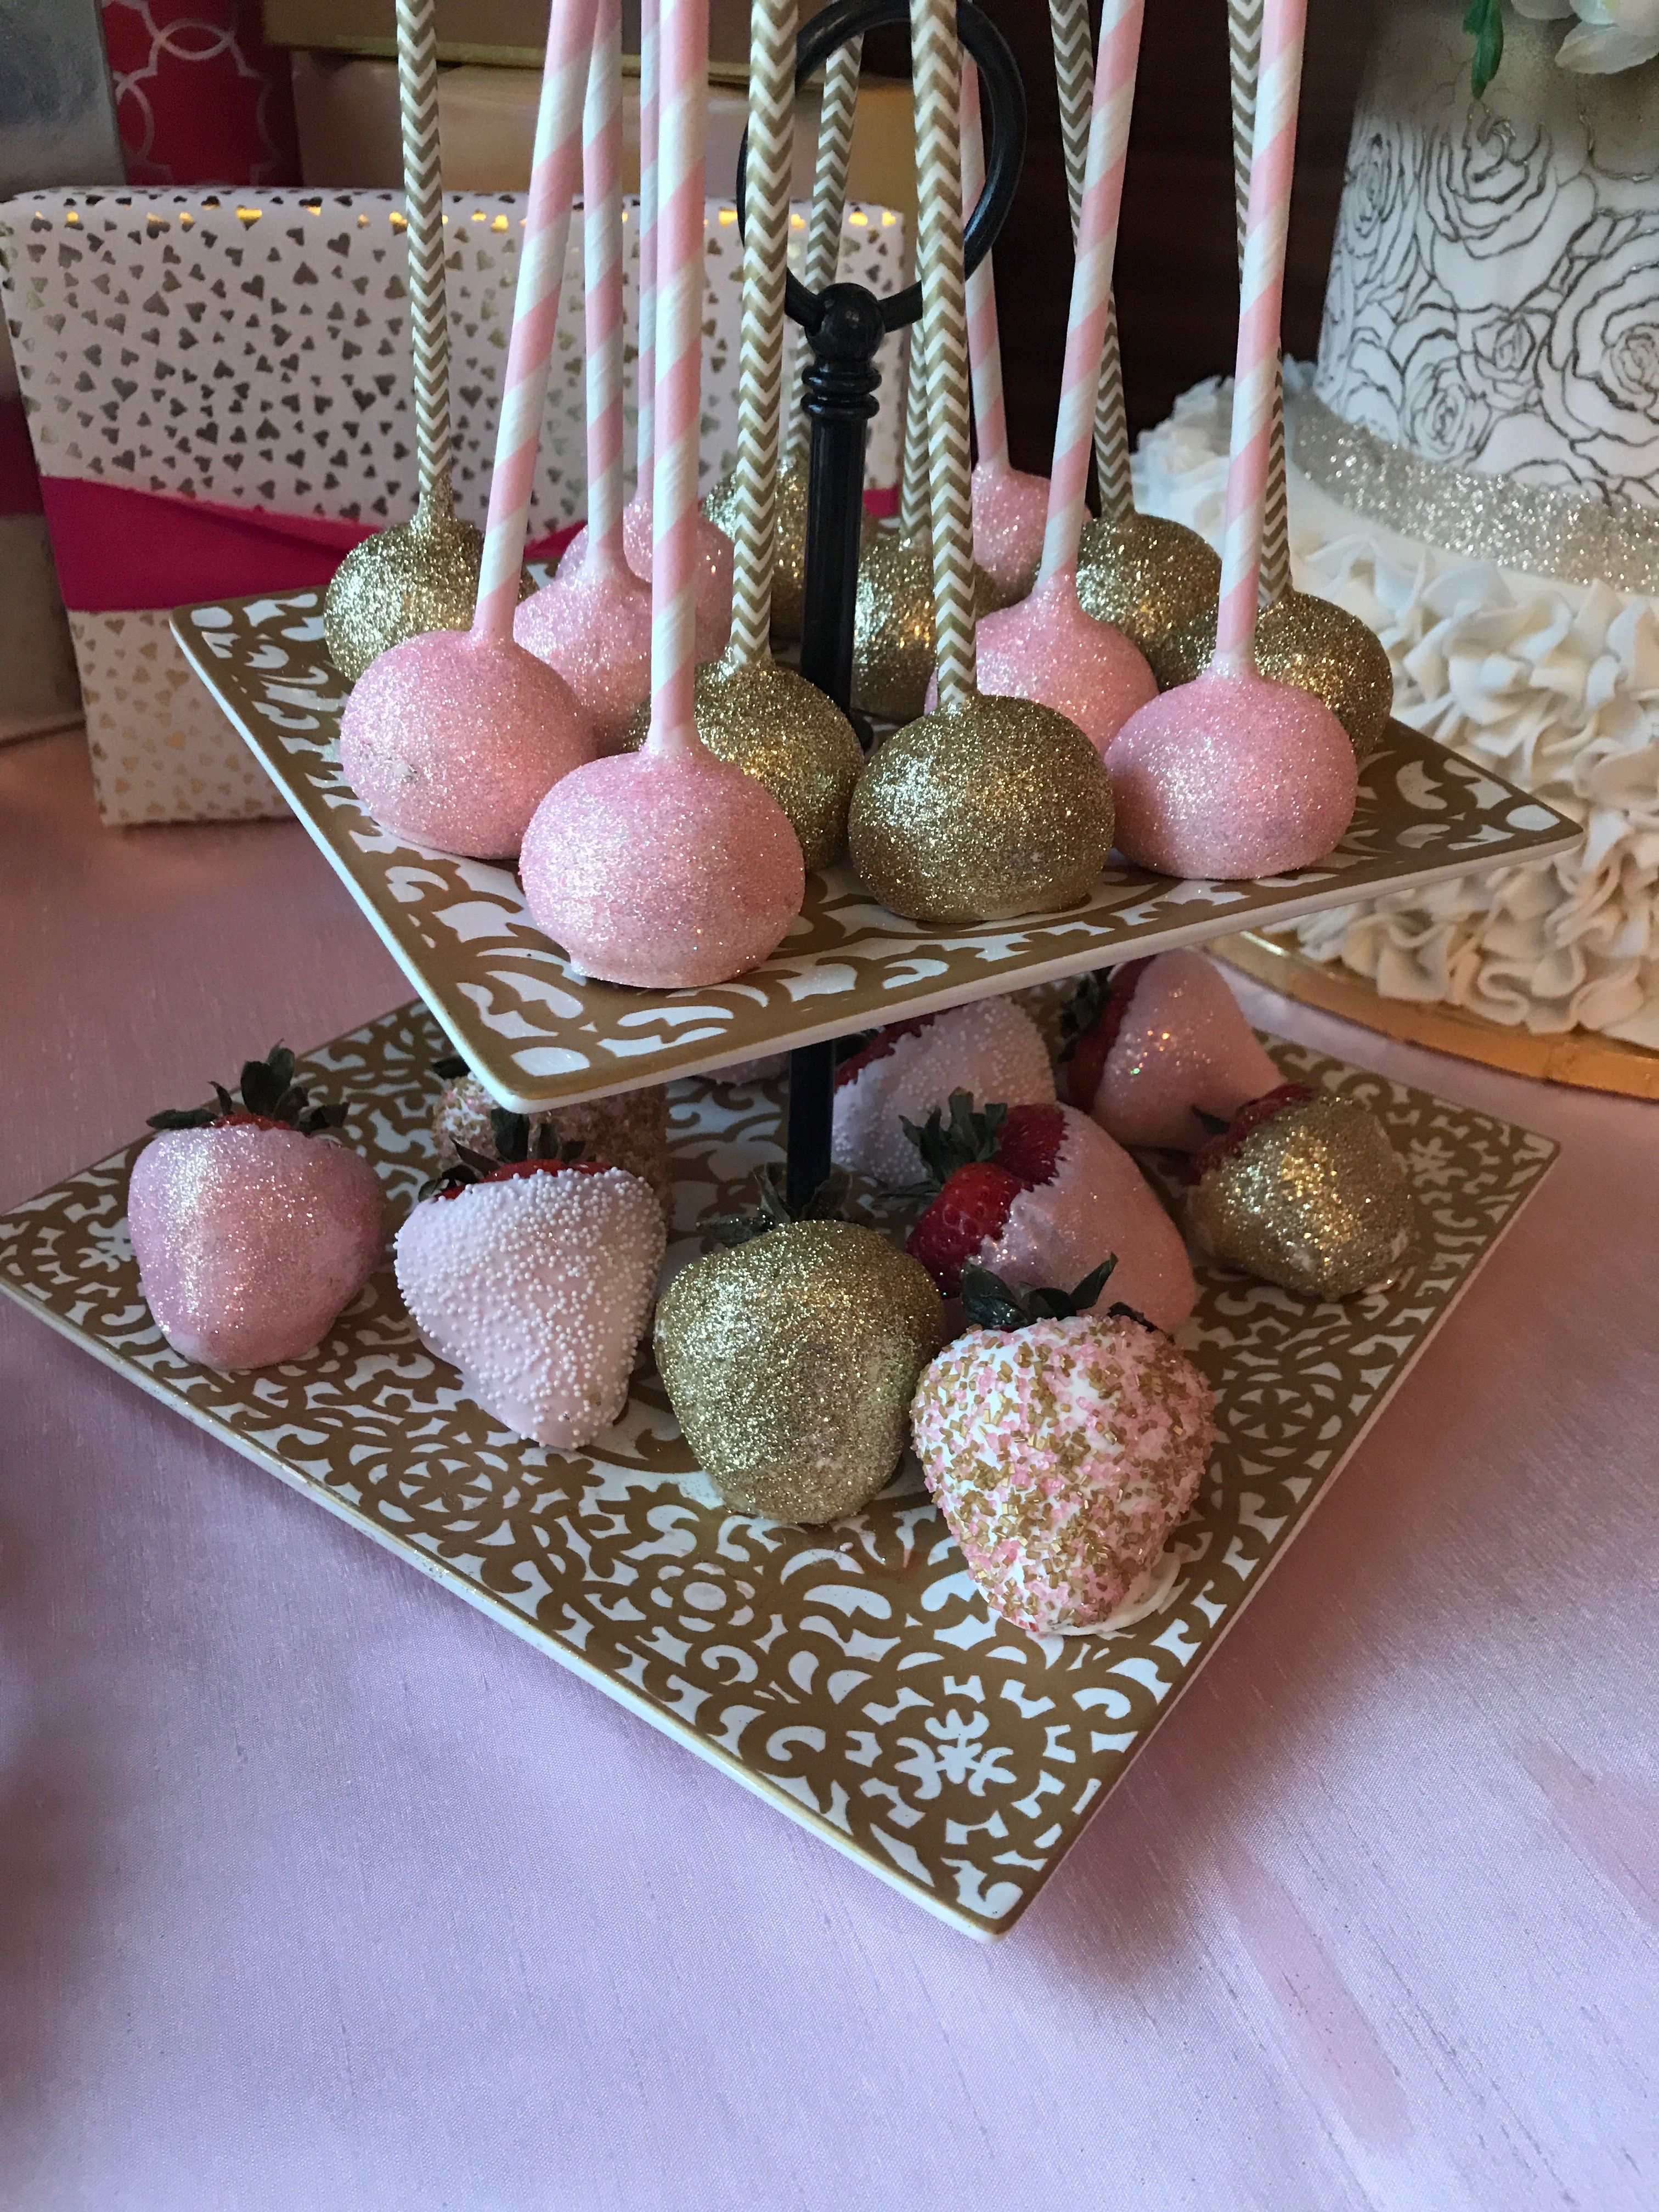 Chocolate covered strawberries and glitter cake pops oh